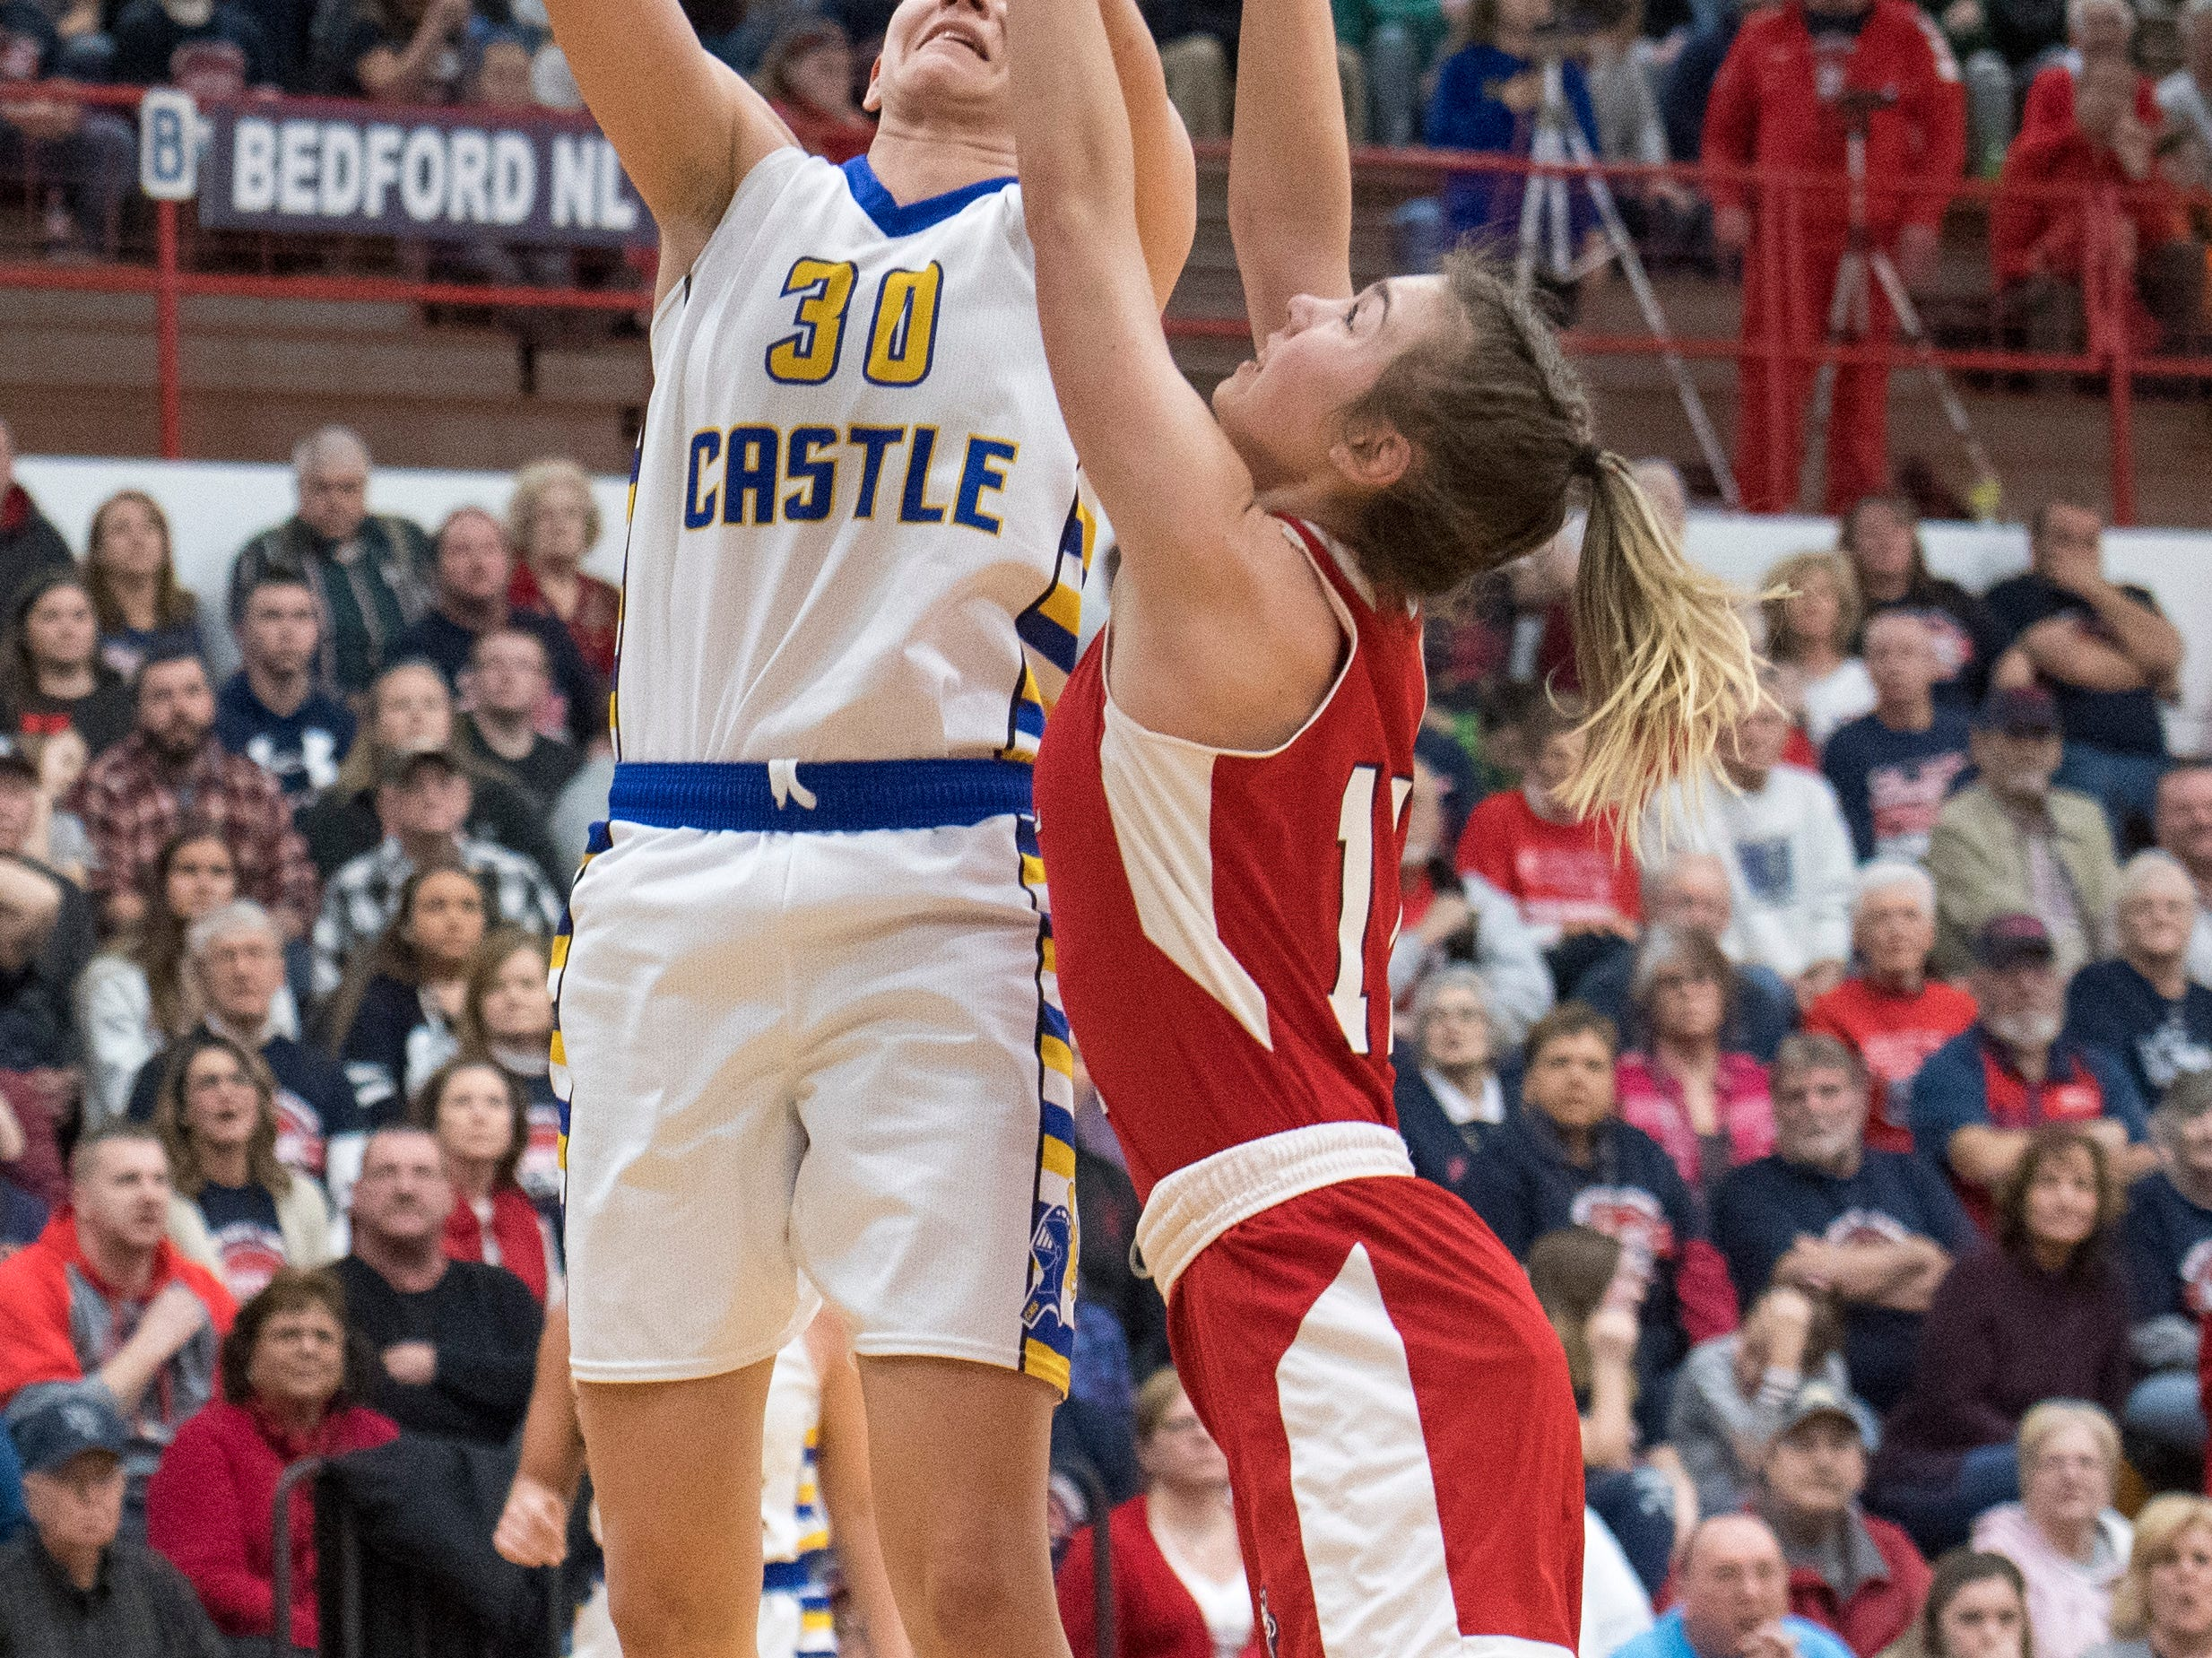 Castle's Jessica Nunge (30) takes a shot during the  IHSAA Girls Basketball Class 4A Regional Championship game against the Bedford North Lawrence Lady Stars at the Stars Field House in Bedford, Ind. Saturday, Feb. 9, 2019.